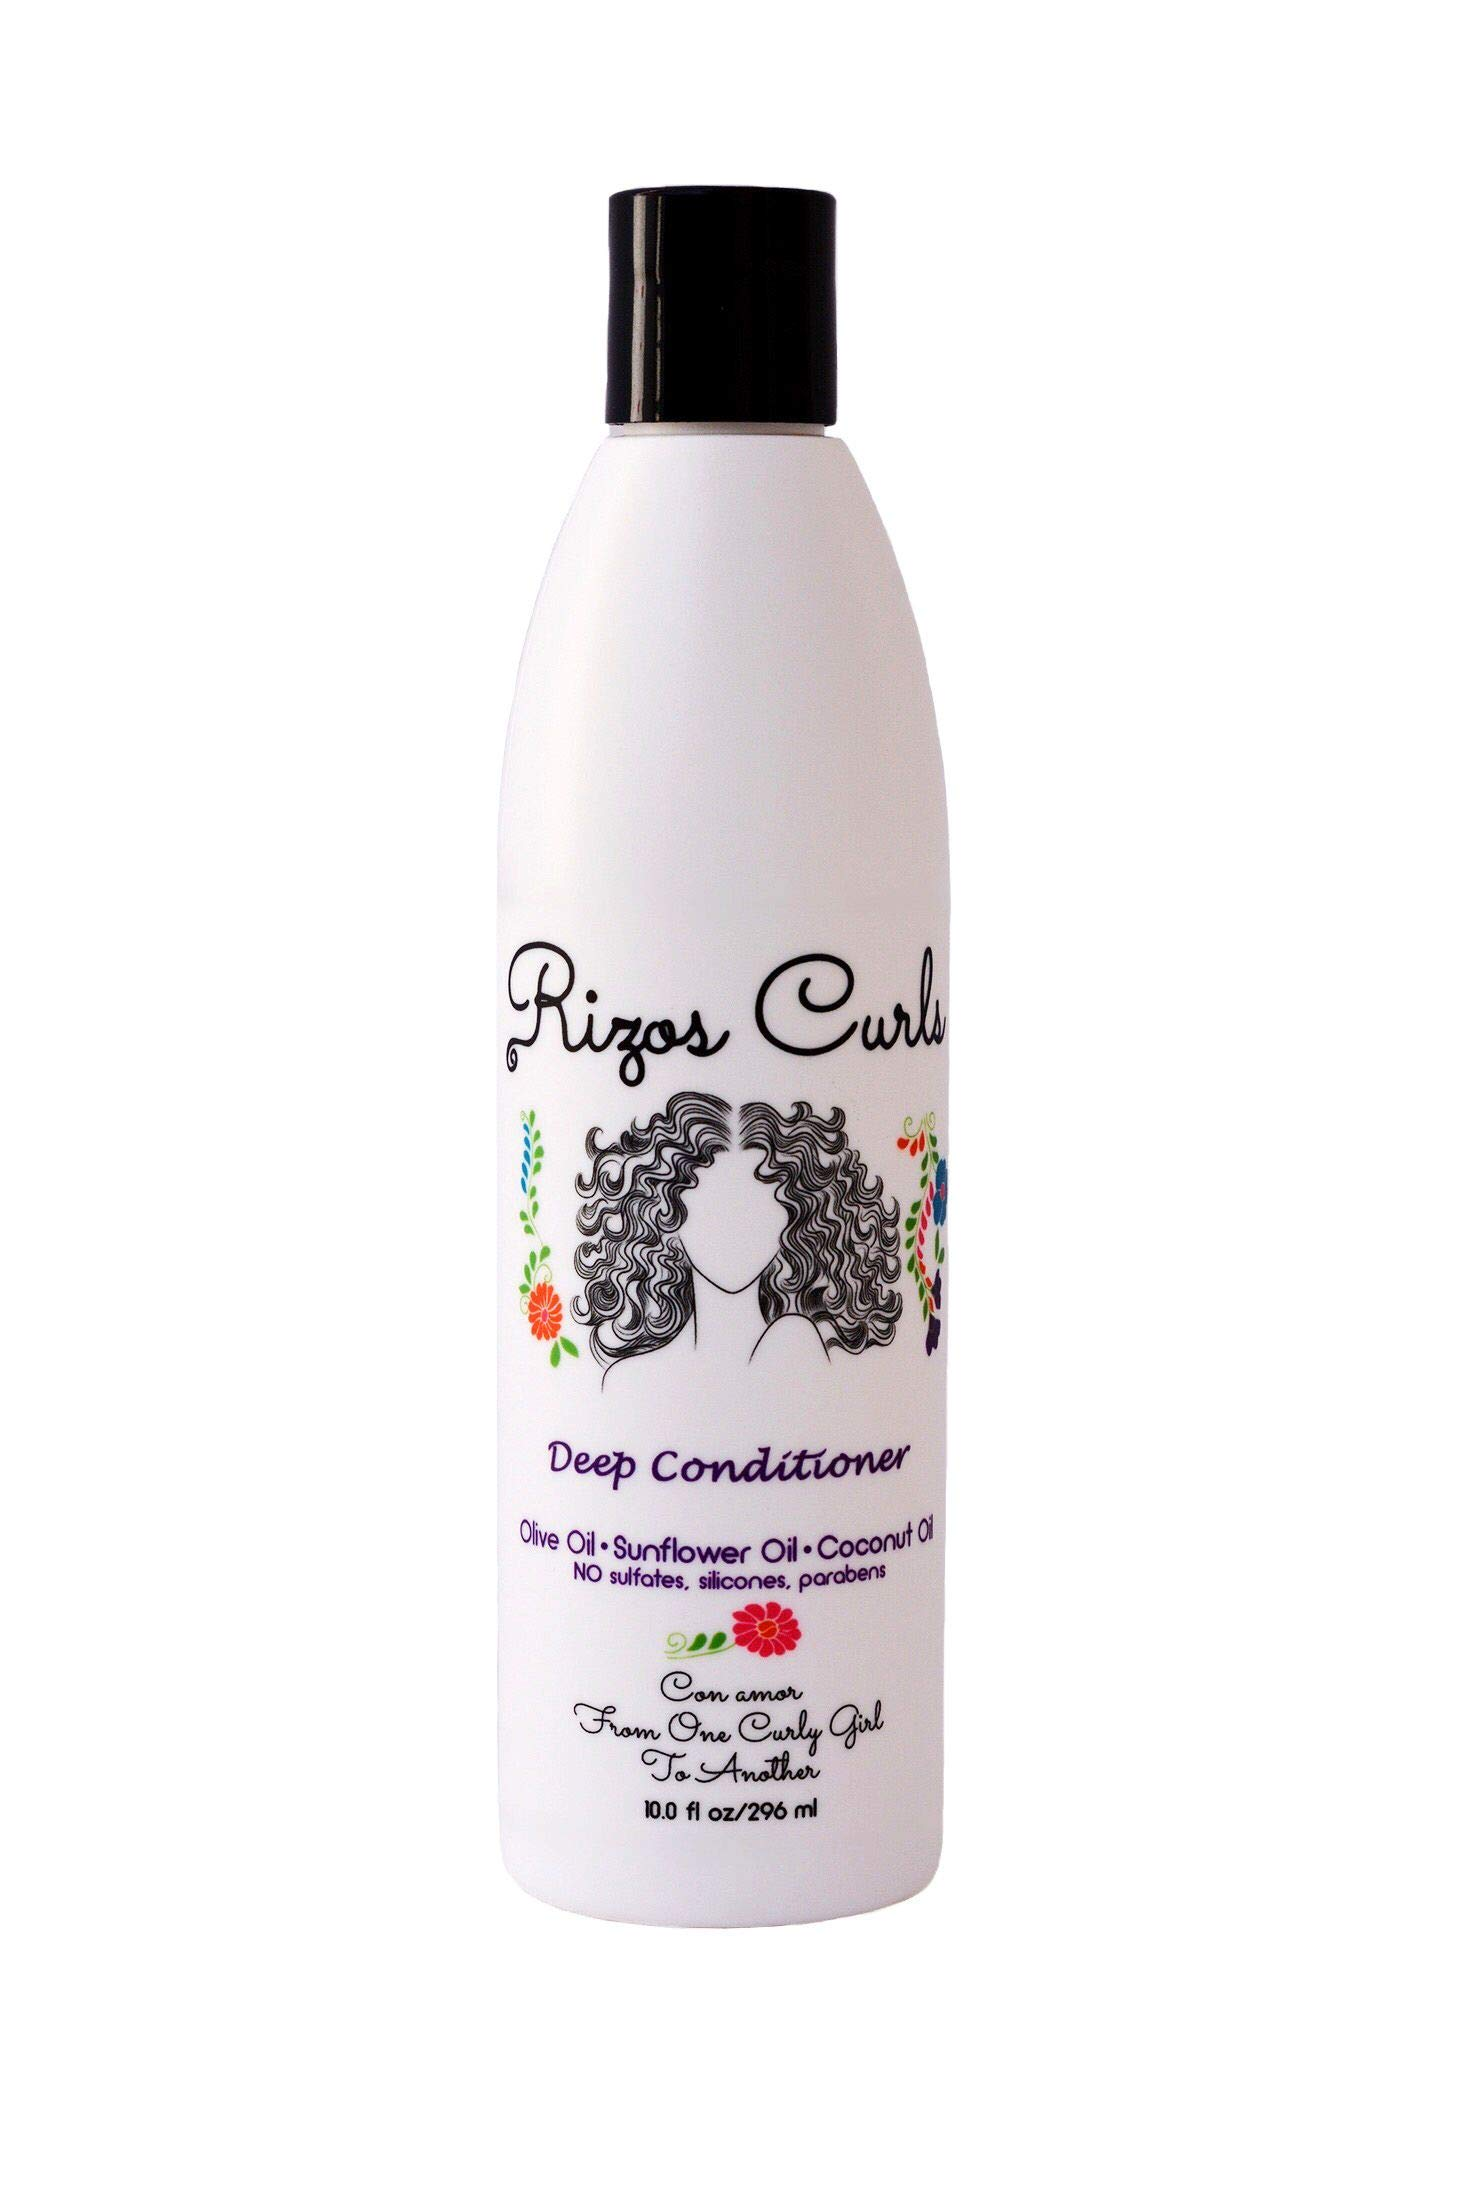 Rizos Curls Deep Conditioner. Deeply Nourishes & Strengthens Hair made with Natural ingredients Olive Oil, Sunflower Oil, Coconut Oil, Argan Oil & Shea Butter. For All Hair Types Curls, Coils & Waves.